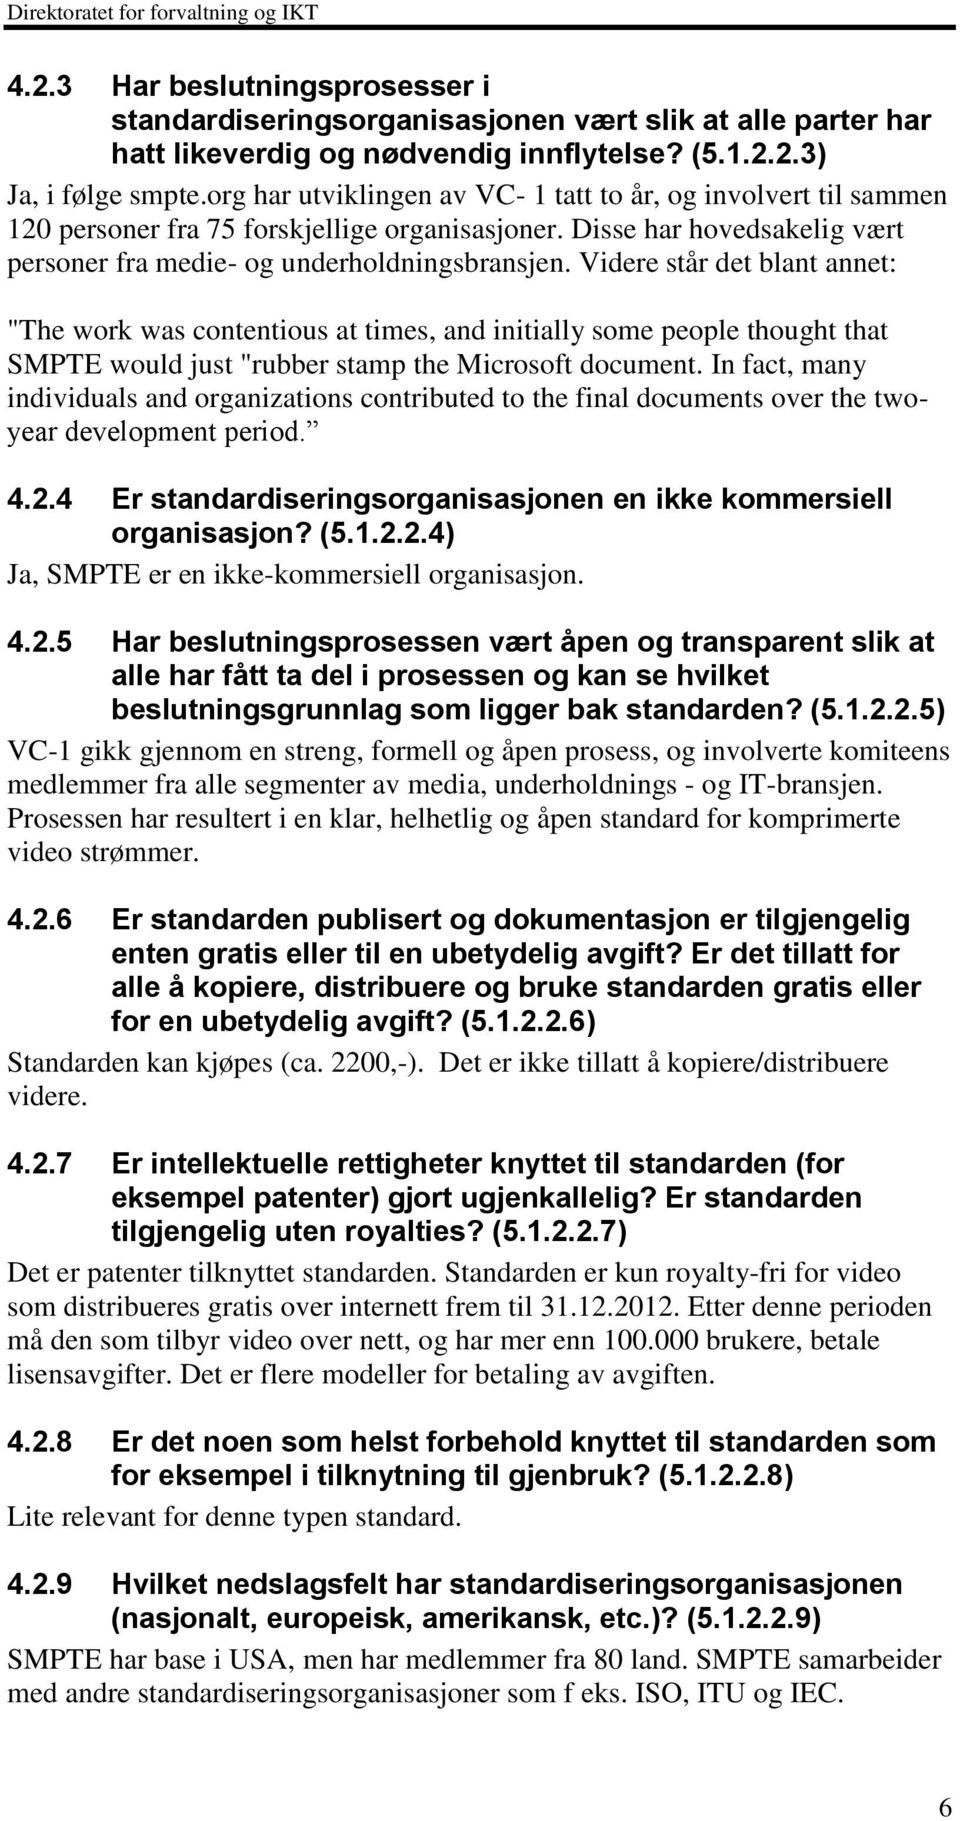 "Videre står det blant annet: ""The work was contentious at times, and initially some people thought that SMPTE would just ""rubber stamp the Microsoft document."